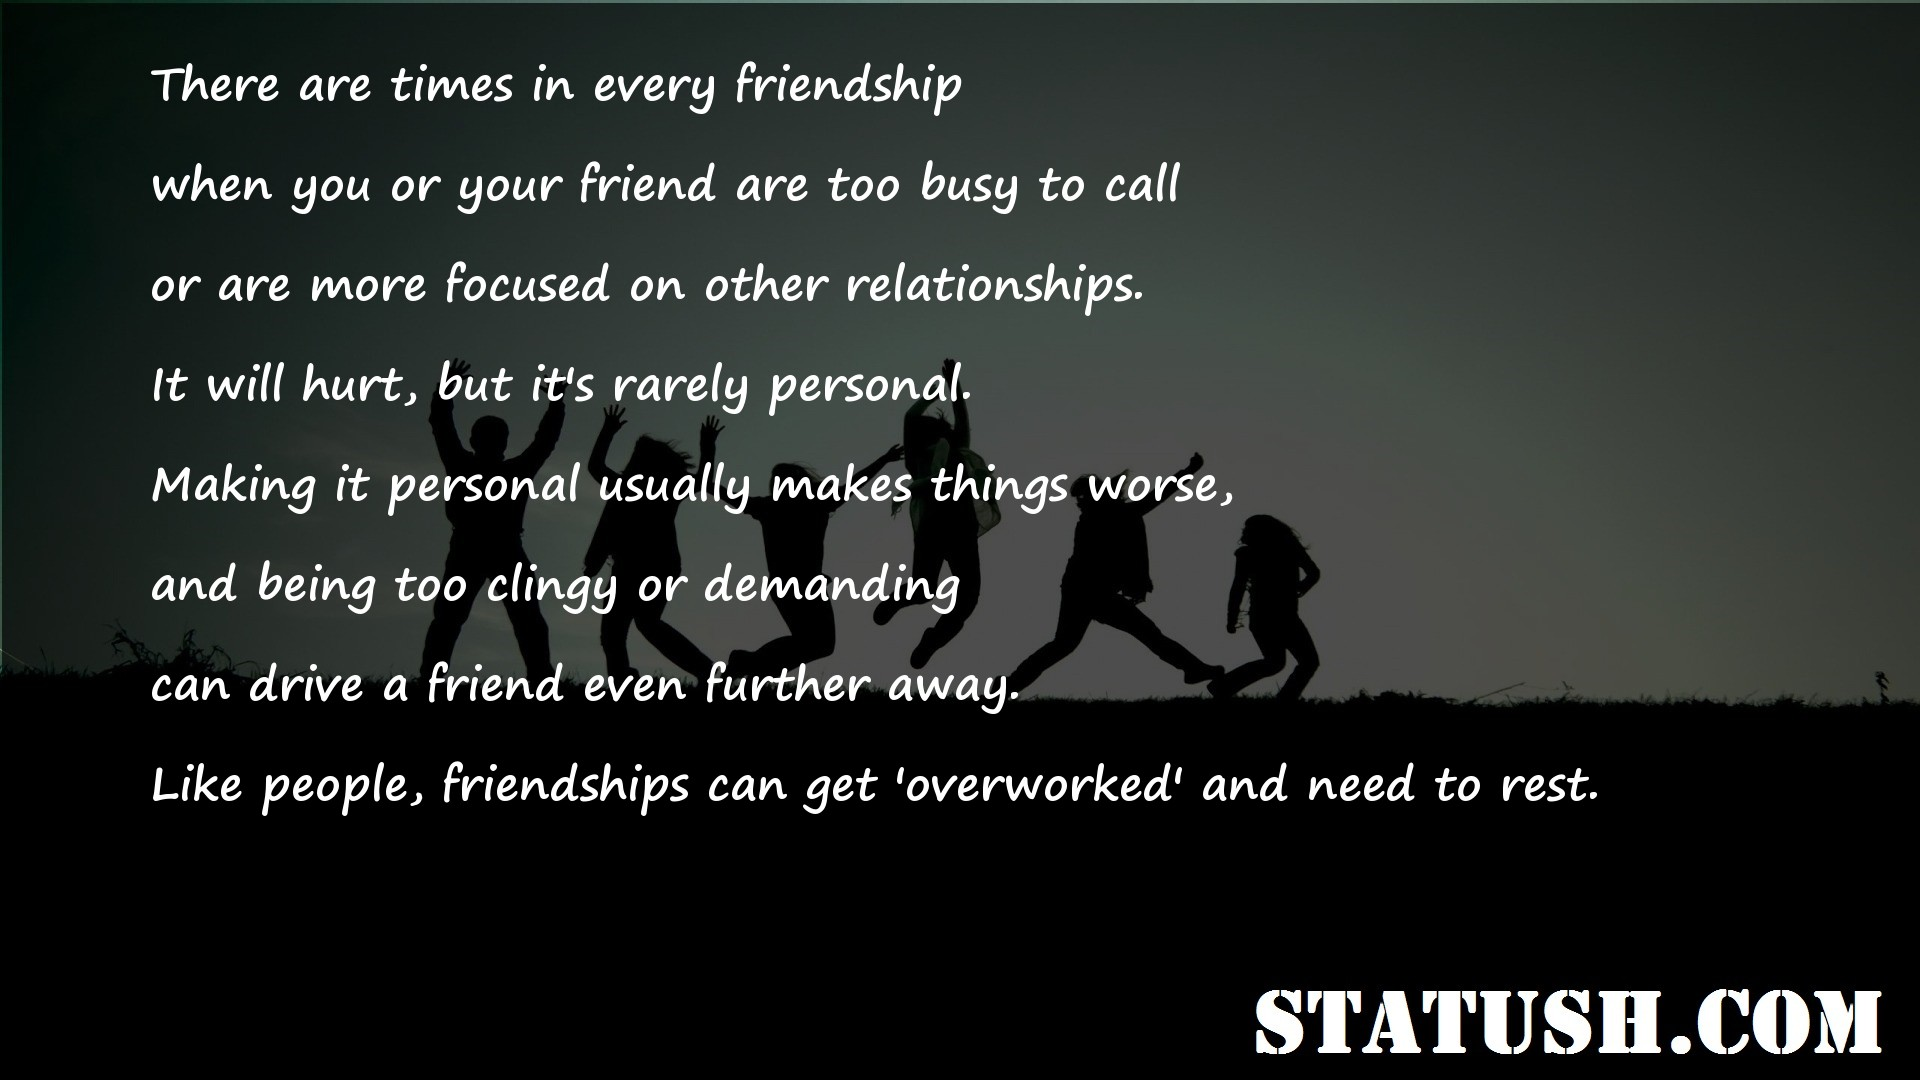 There are times in every friendship